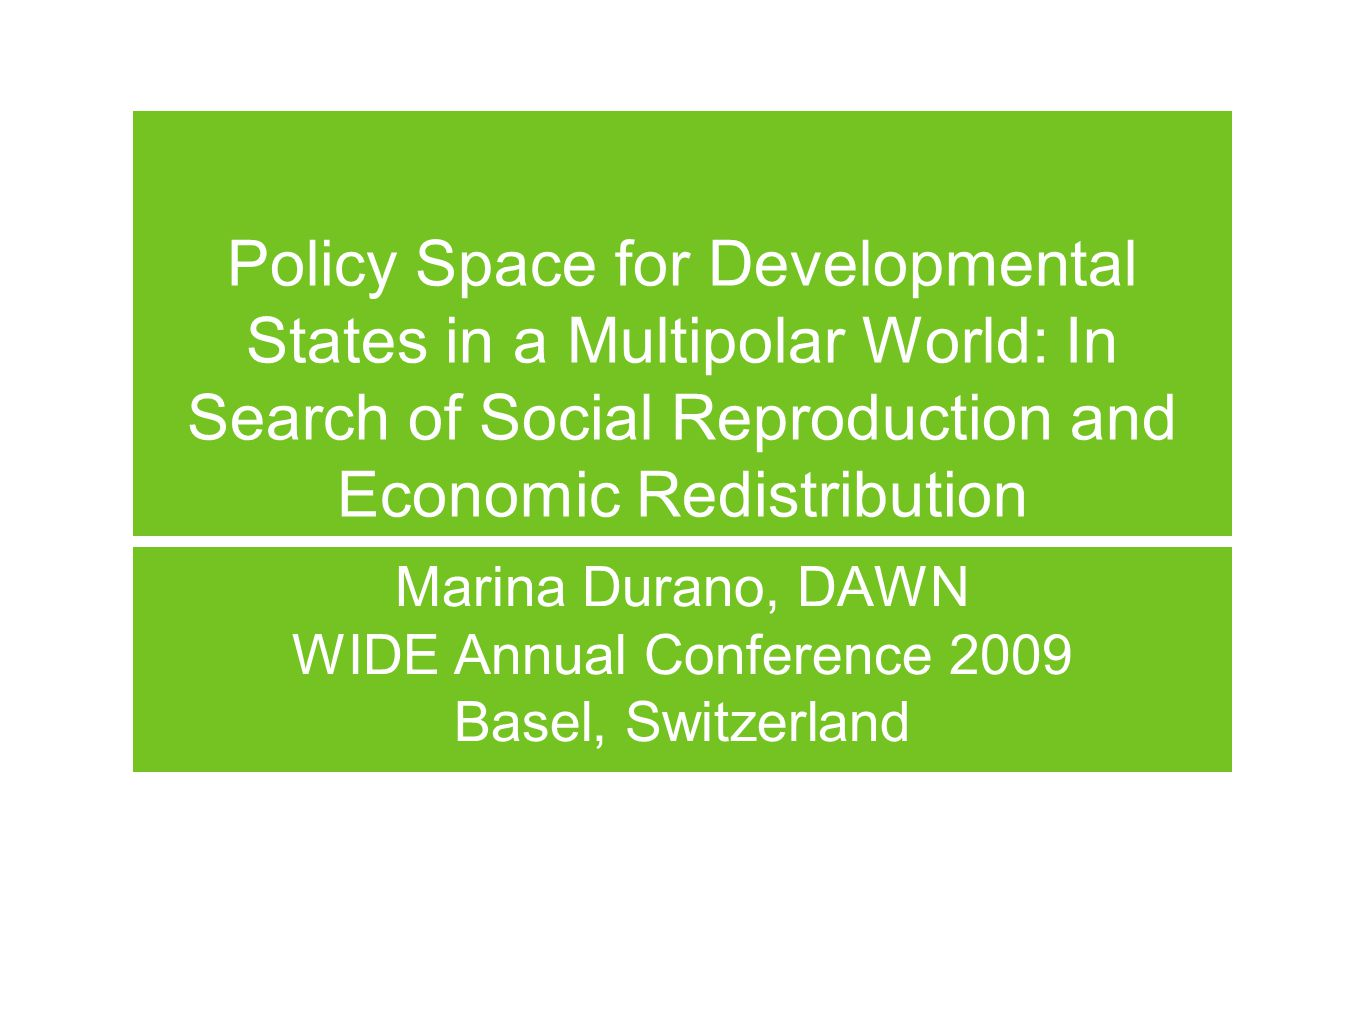 Policy Space for Developmental States in a Multipolar World: In Search of Social Reproduction and Economic Redistribution Marina Durano, DAWN WIDE Annual Conference 2009 Basel, Switzerland